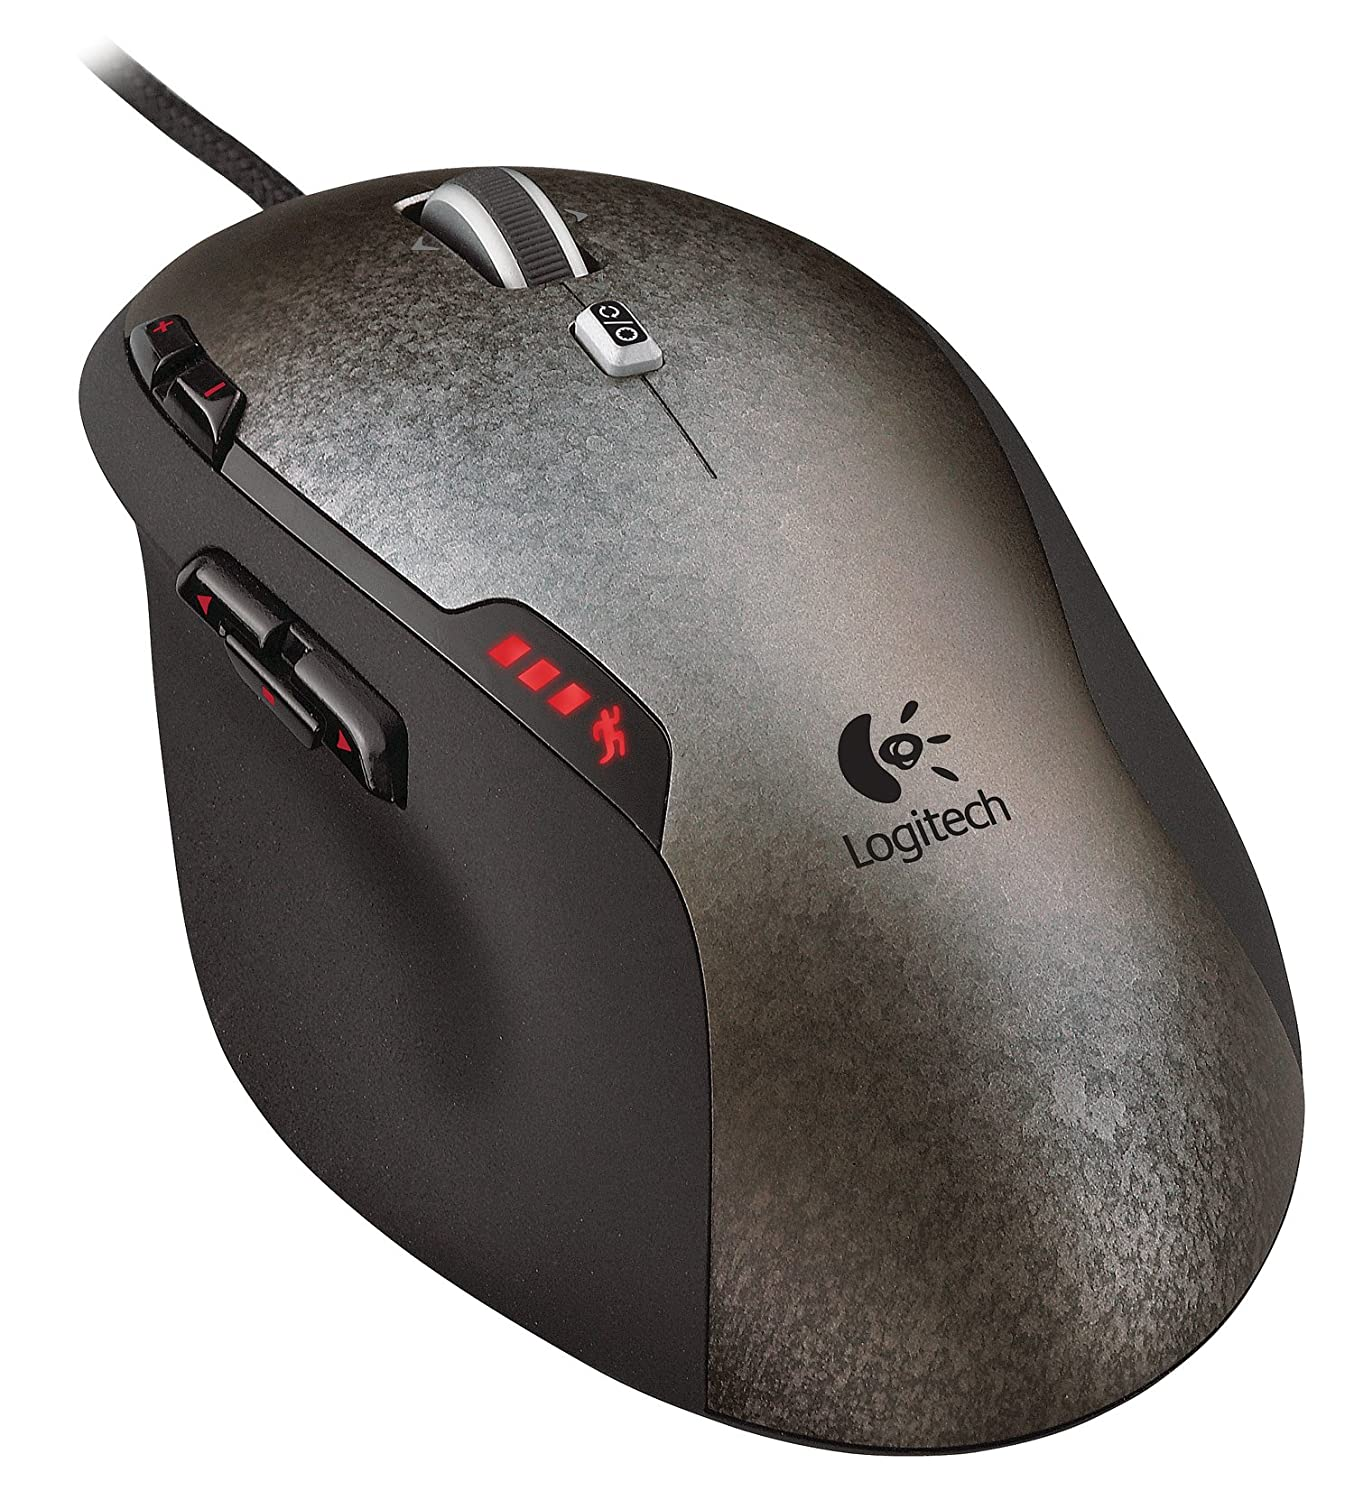 Logitech G500 Programmable Gaming Mouse $37.99